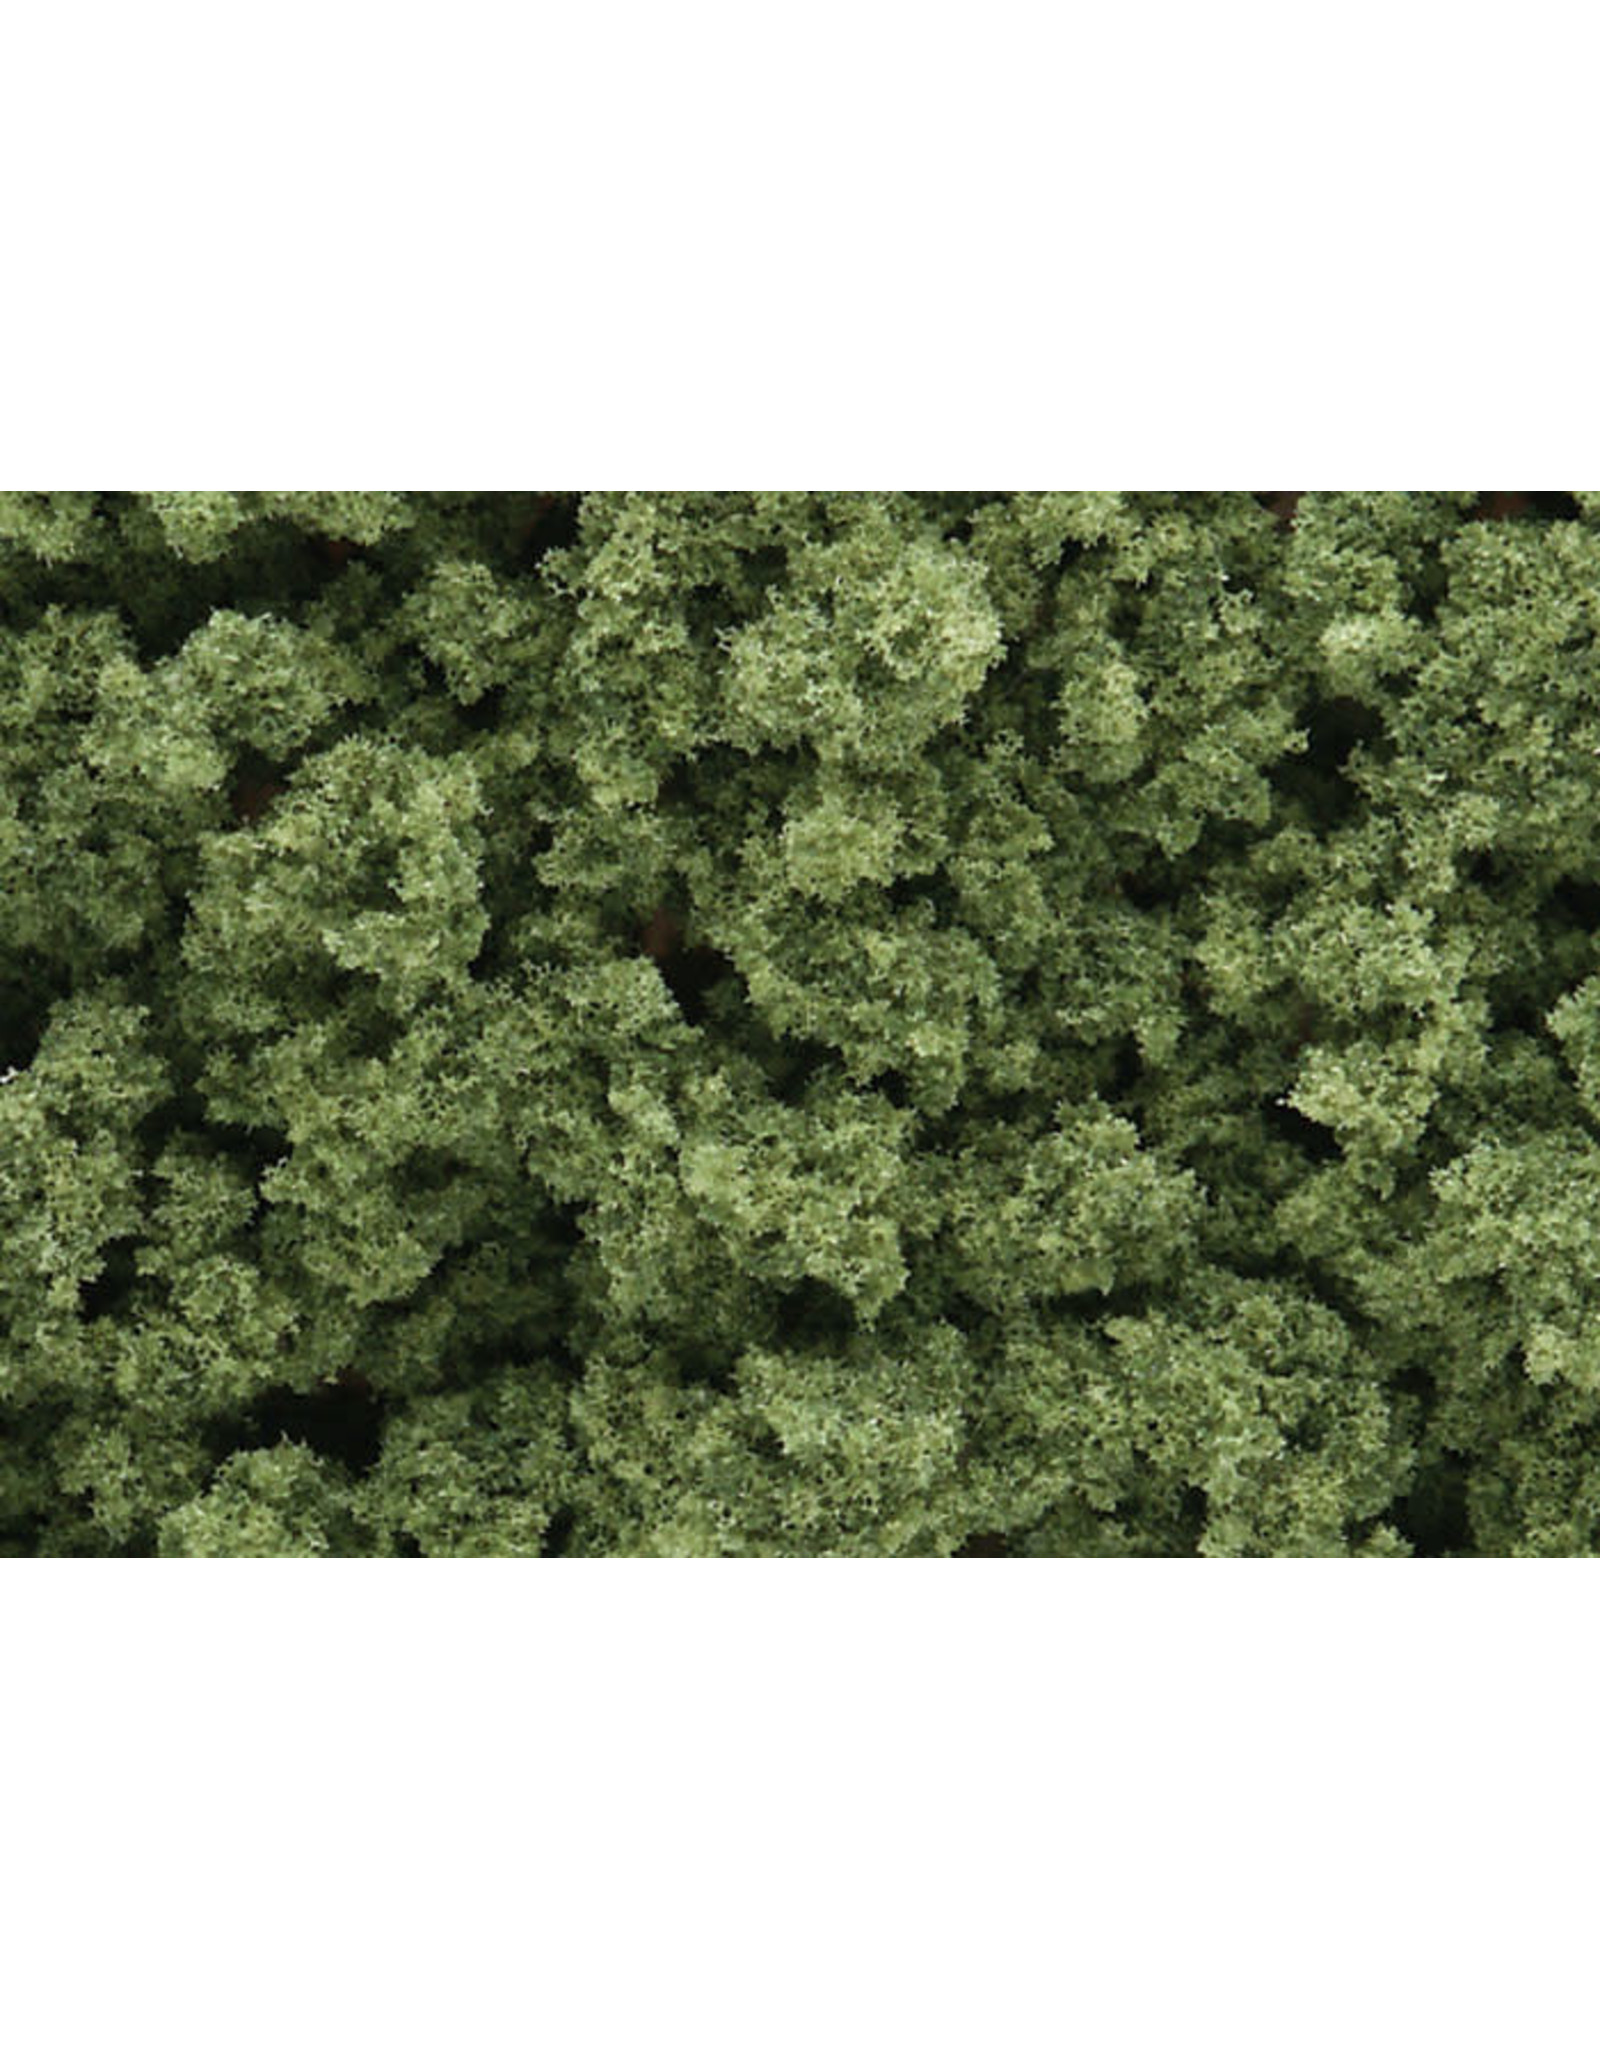 Woodland Scenics Bushes Light Green FC1645